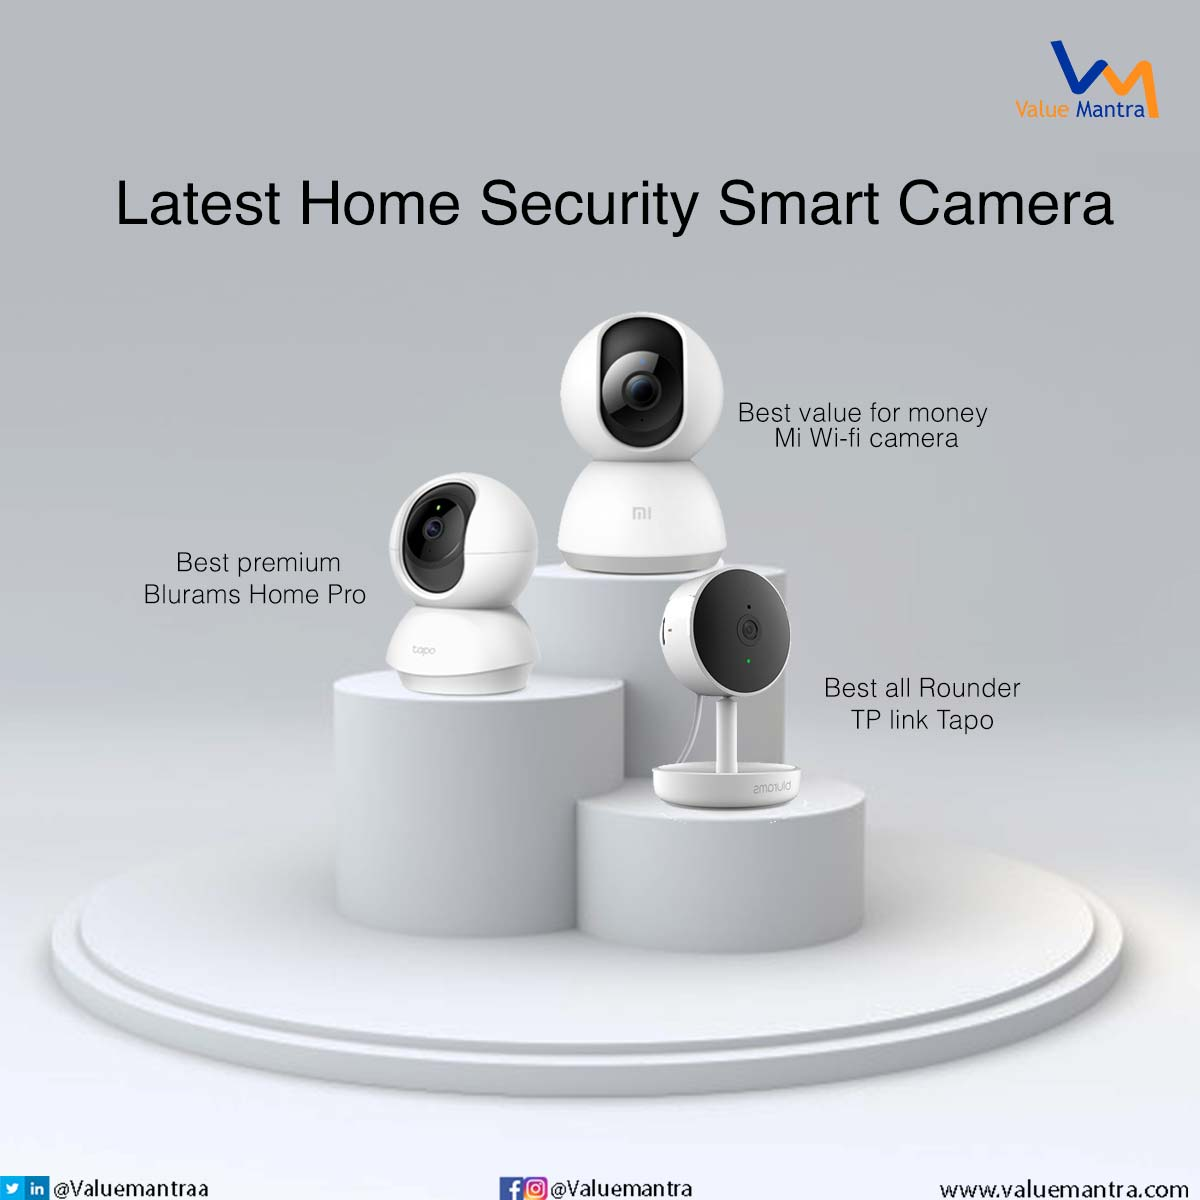 Wifi security – Best cctv camera for home (2021)